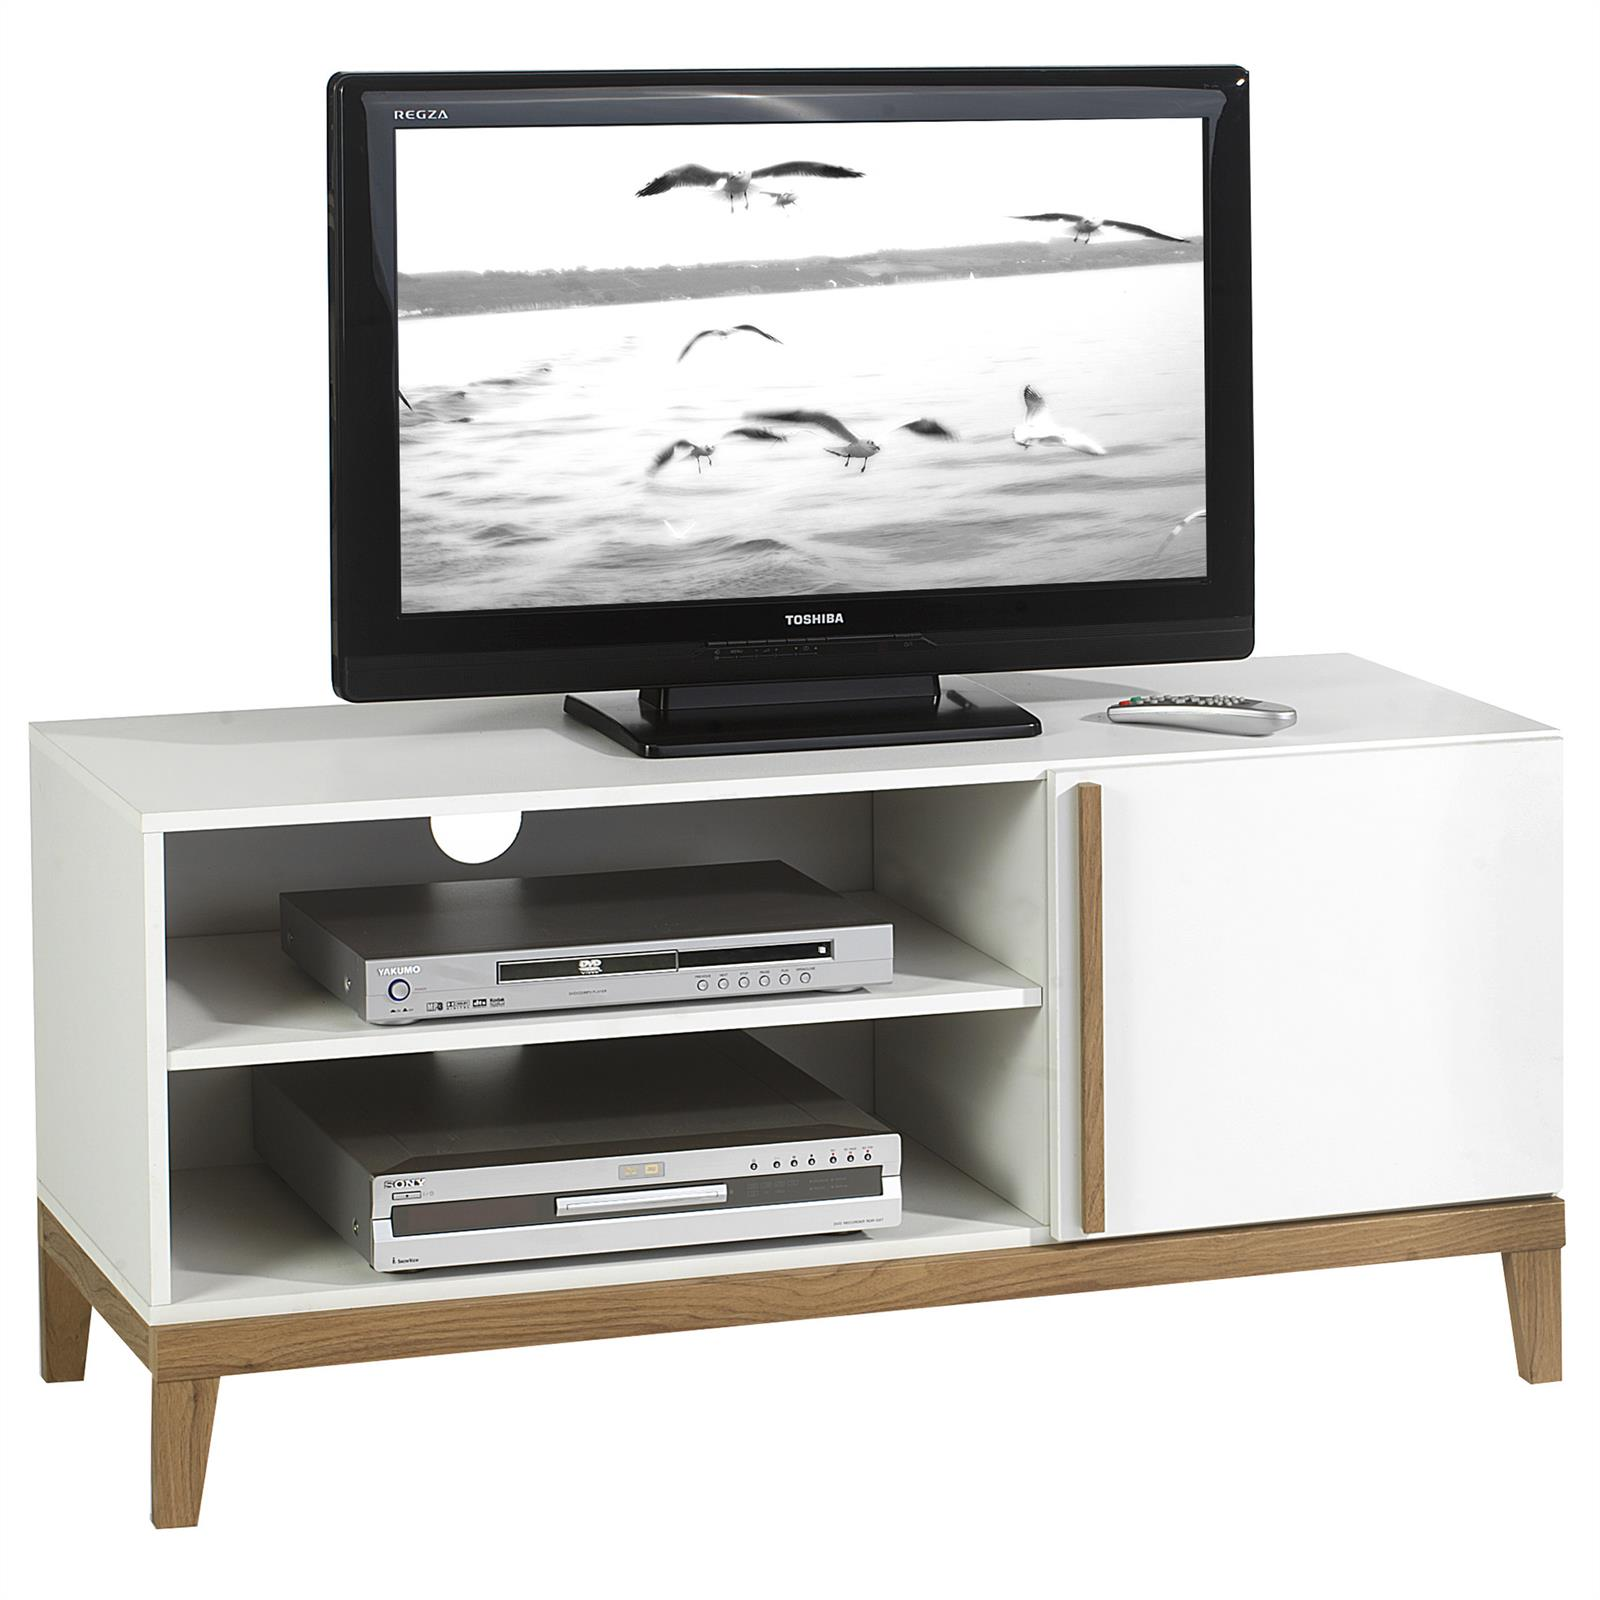 meuble tv riga 2 niches 1 porte blanc et bois mobil meubles. Black Bedroom Furniture Sets. Home Design Ideas